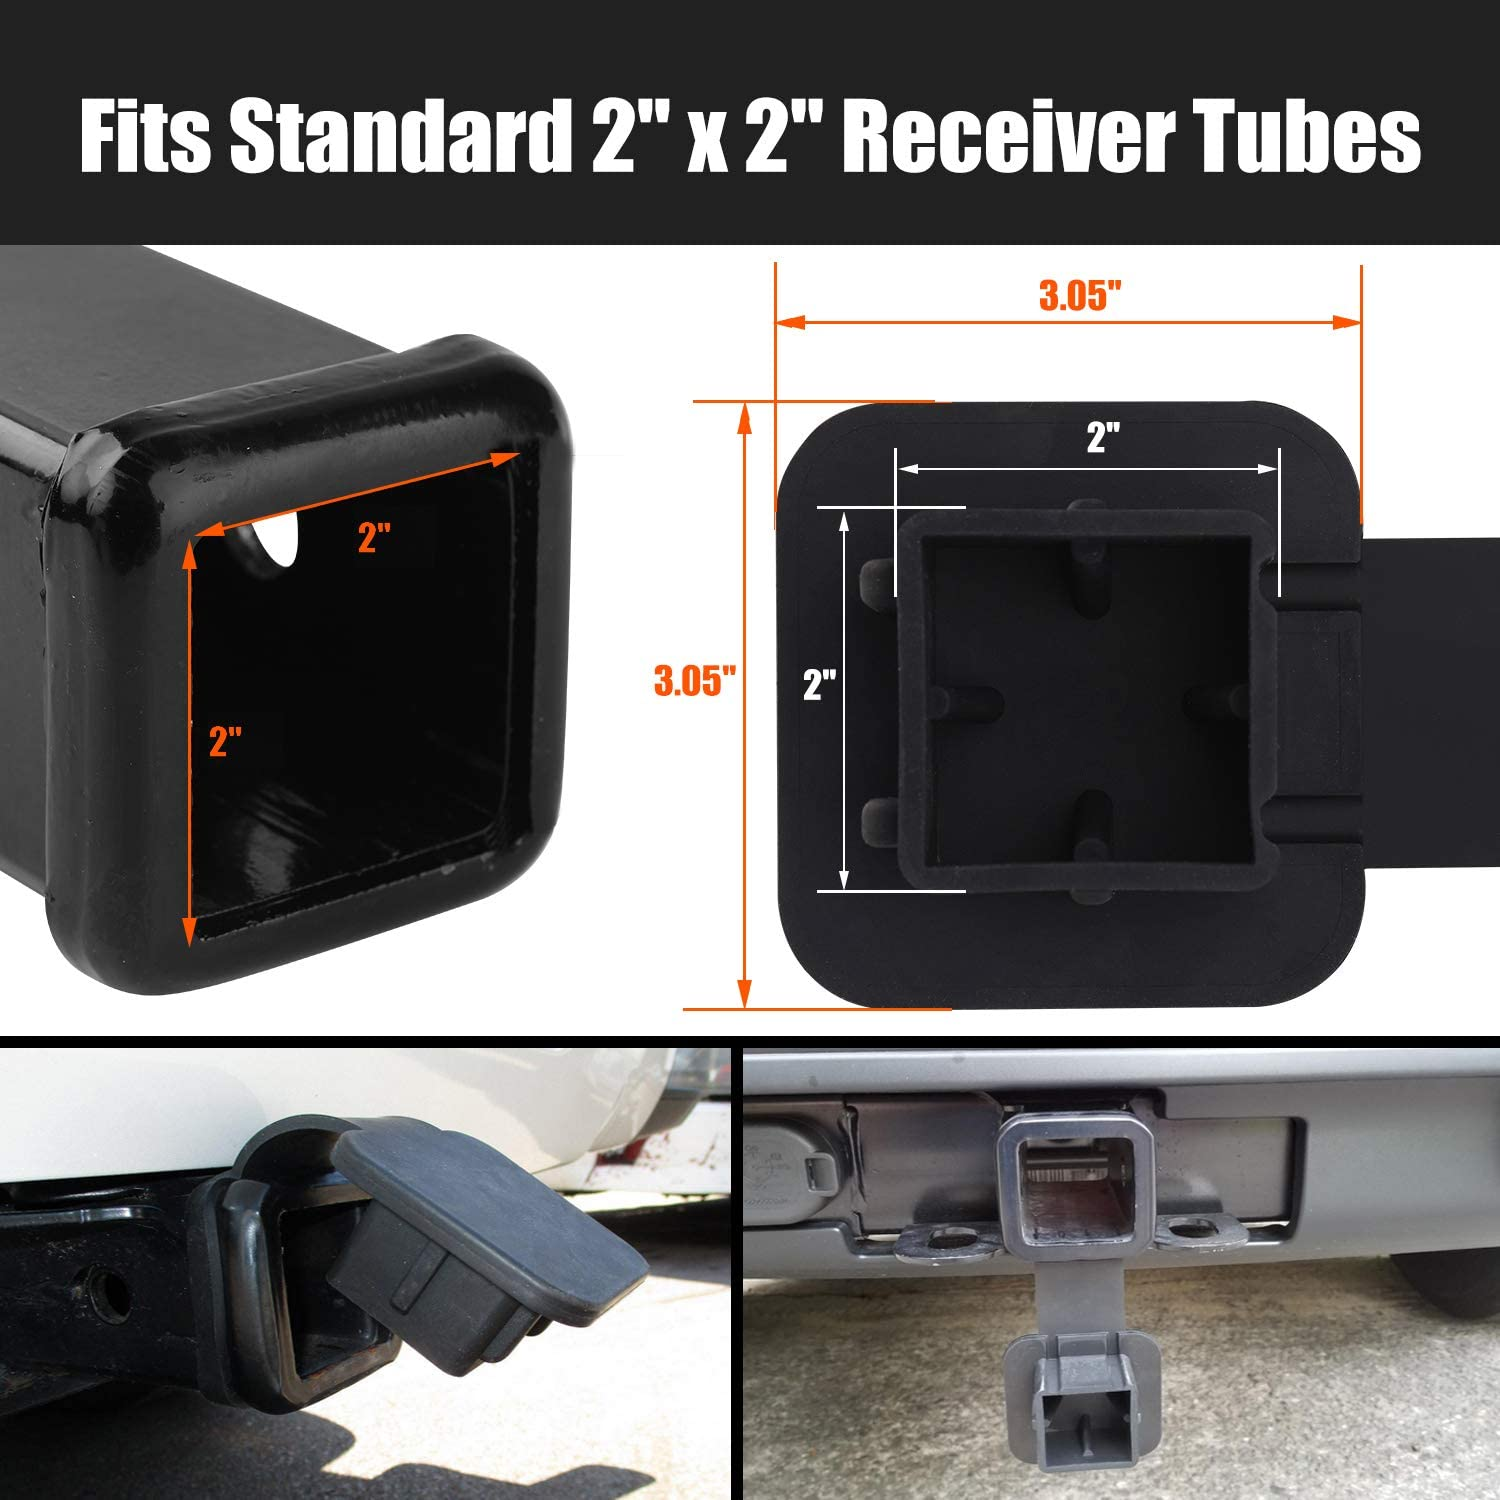 Receiver Tube Cover 2 Inch Black Receiver Hitch Cover for Toyota Mercedes Mopar Audi F150 Ford GMC Truck Chevy Jeep Lexus 4runner Porsche CZC AUTO 2 Inch Trailer Hitch Cover Plug Cap Insert